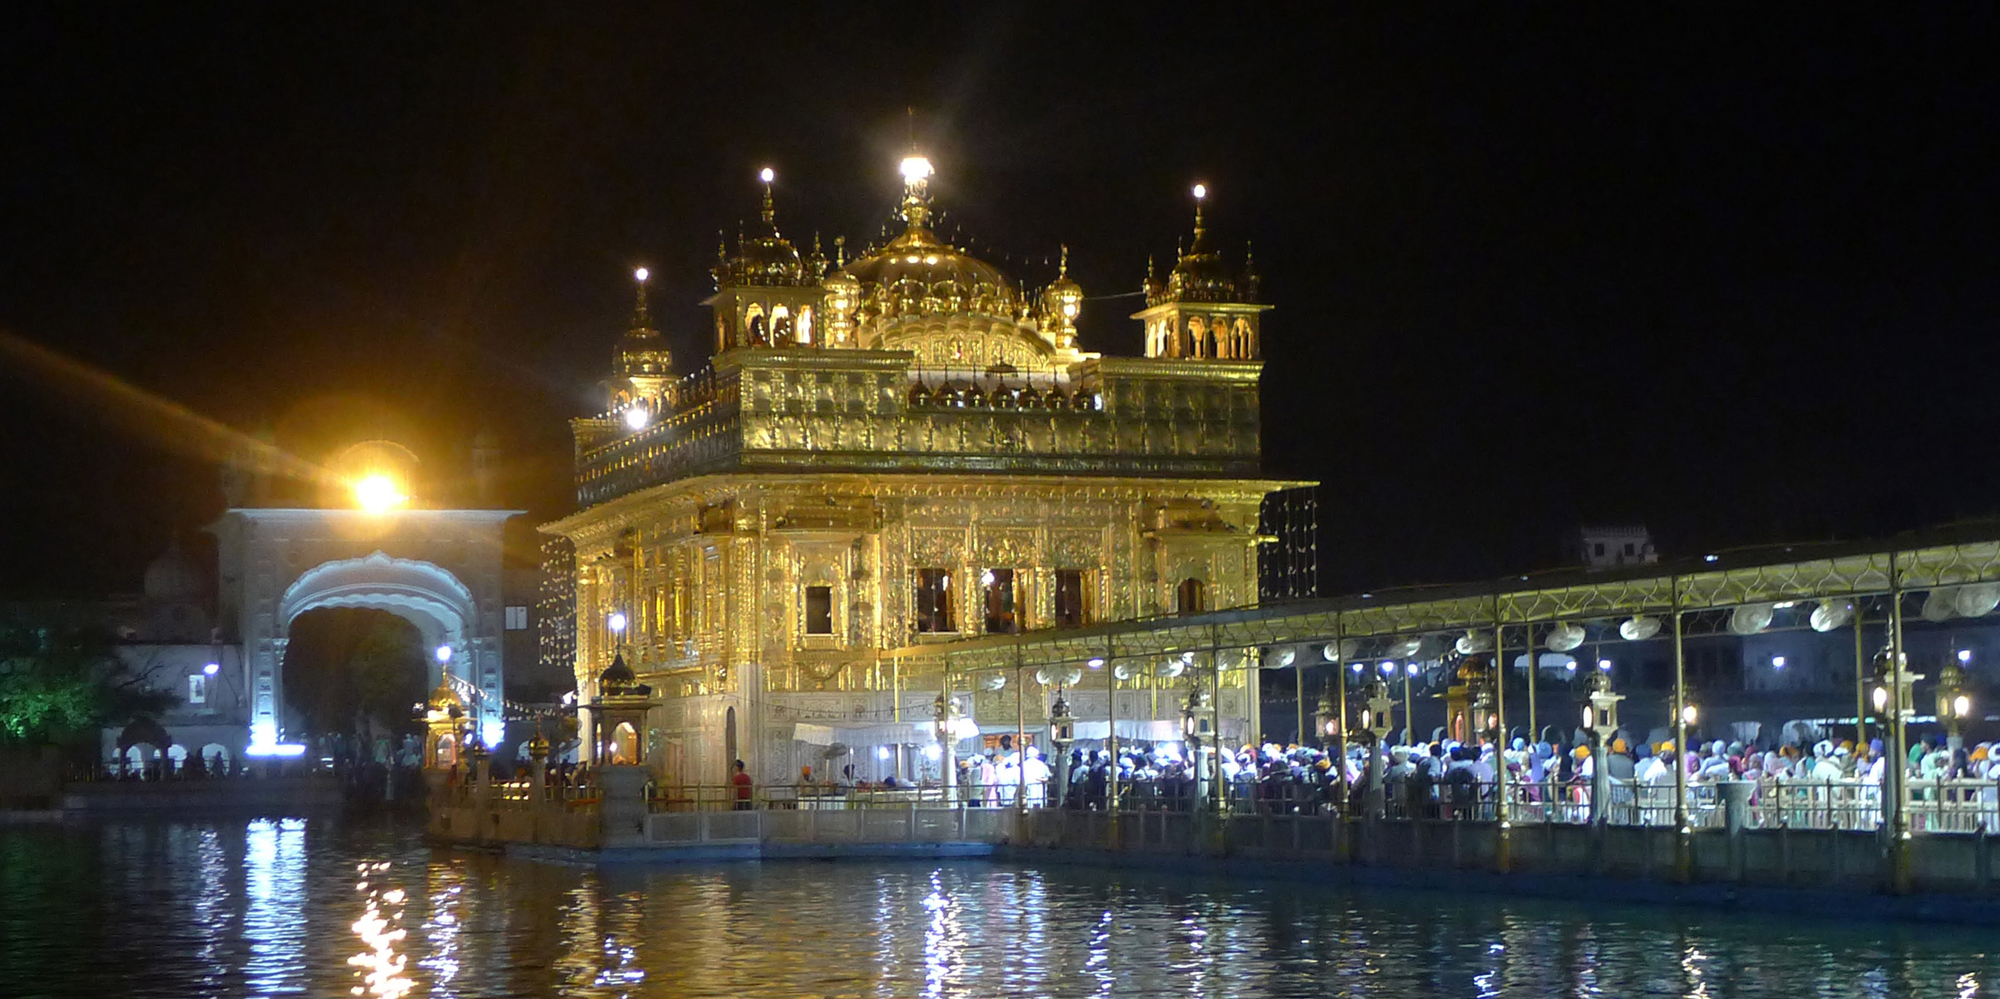 <strong> The Golden Temple Seen At Night, Amristar</strong> - The Harmandir Sahib also Darbar Sahib and informally referred to as the Golden Temple is a prominent Sikh Gurdwara located in the city of Amritsar, Punjab, India.